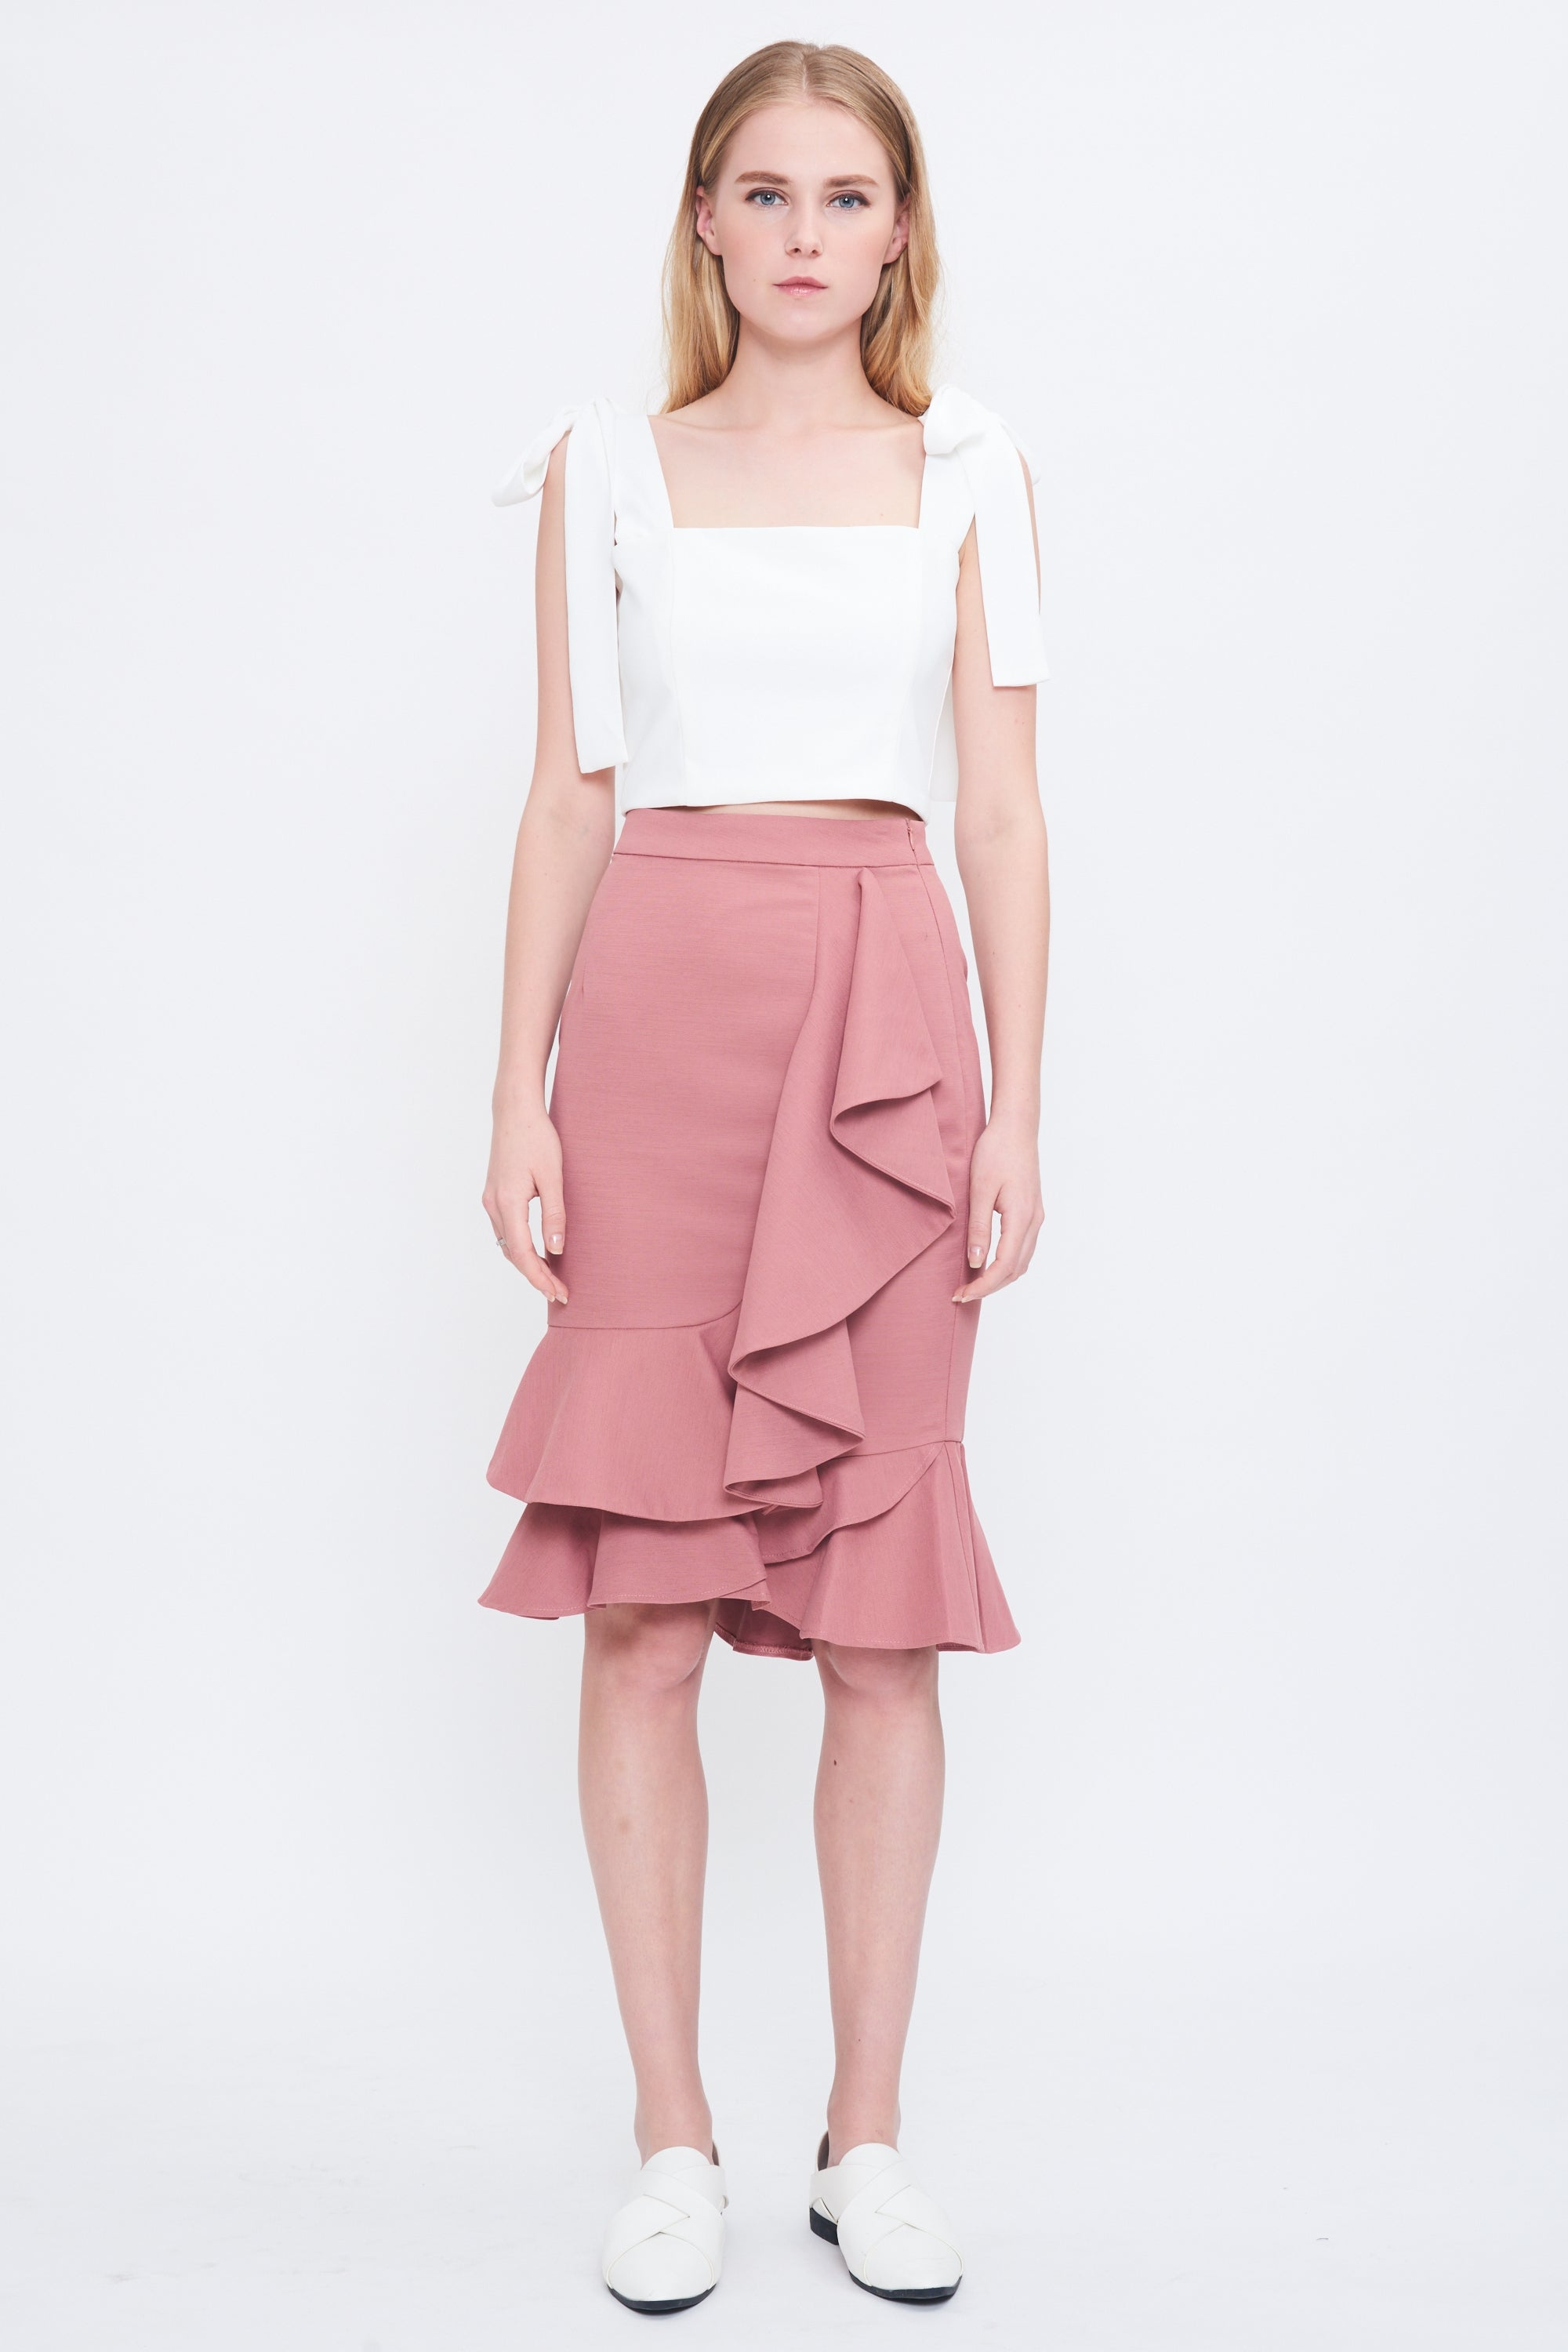 draped mini skirts zara pinterest drapes drape trf skirt minis pin